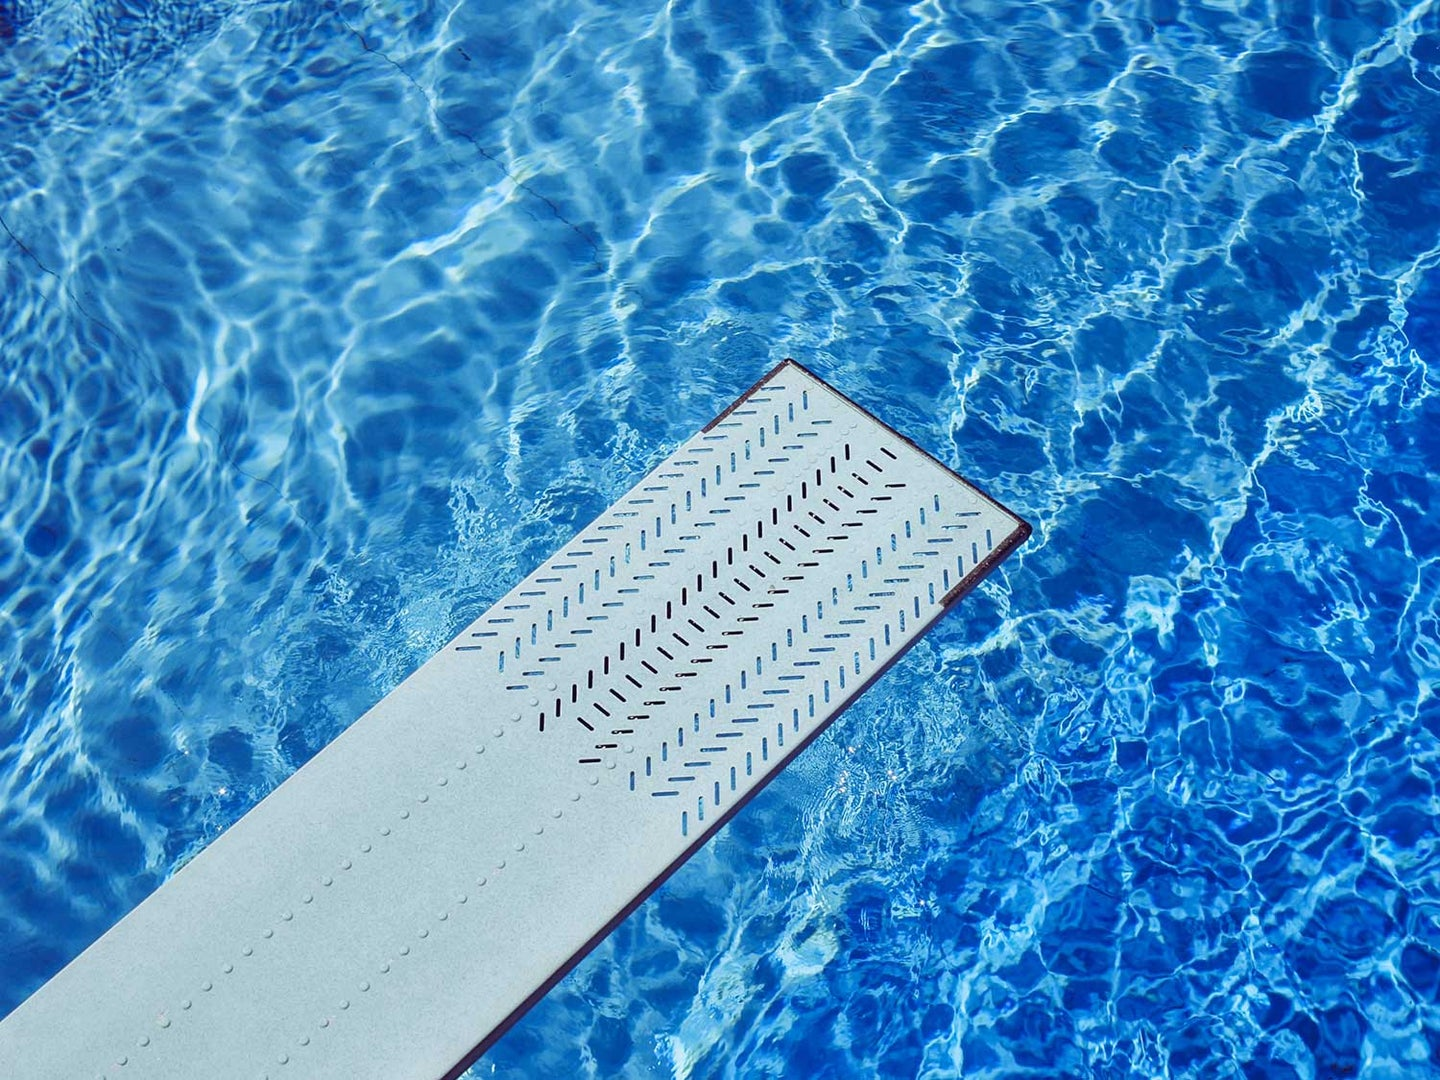 Diving board on top of pool with blue water.